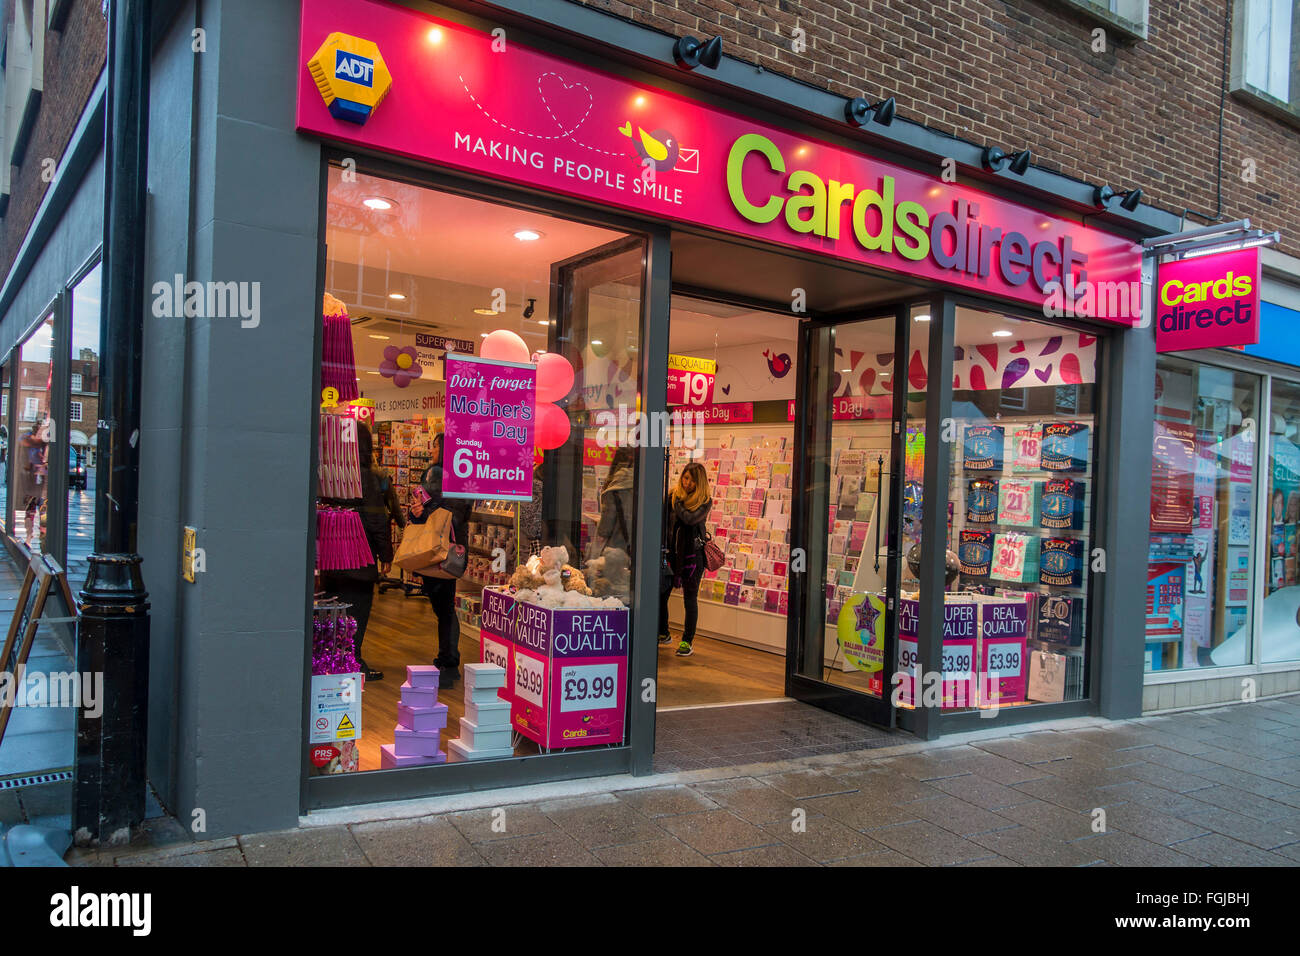 Cards direct card shop greeting cards high street store stock photo cards direct card shop greeting cards high street store m4hsunfo